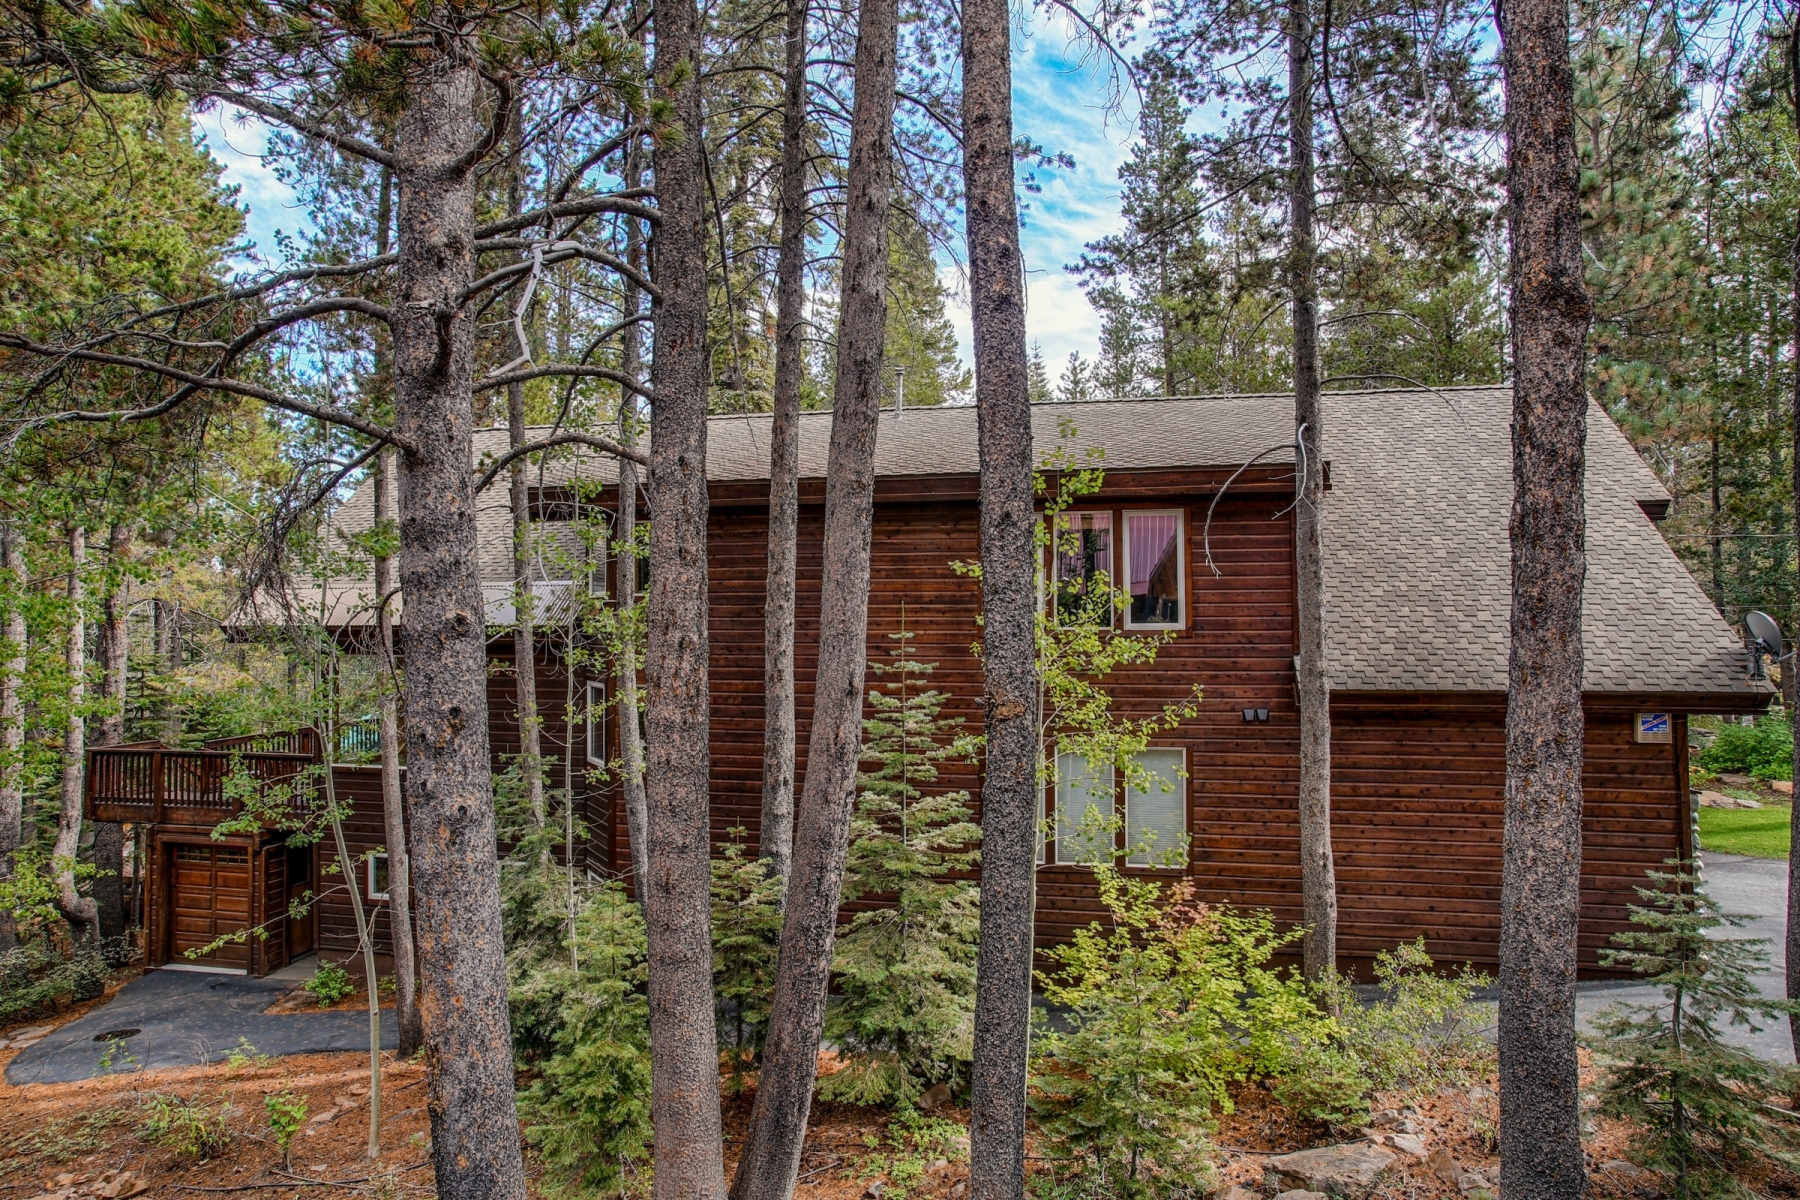 Additional photo for property listing at 15187 Swiss Lane Truckee California, 96161 15187 Swiss Lane Truckee, California 96161 United States